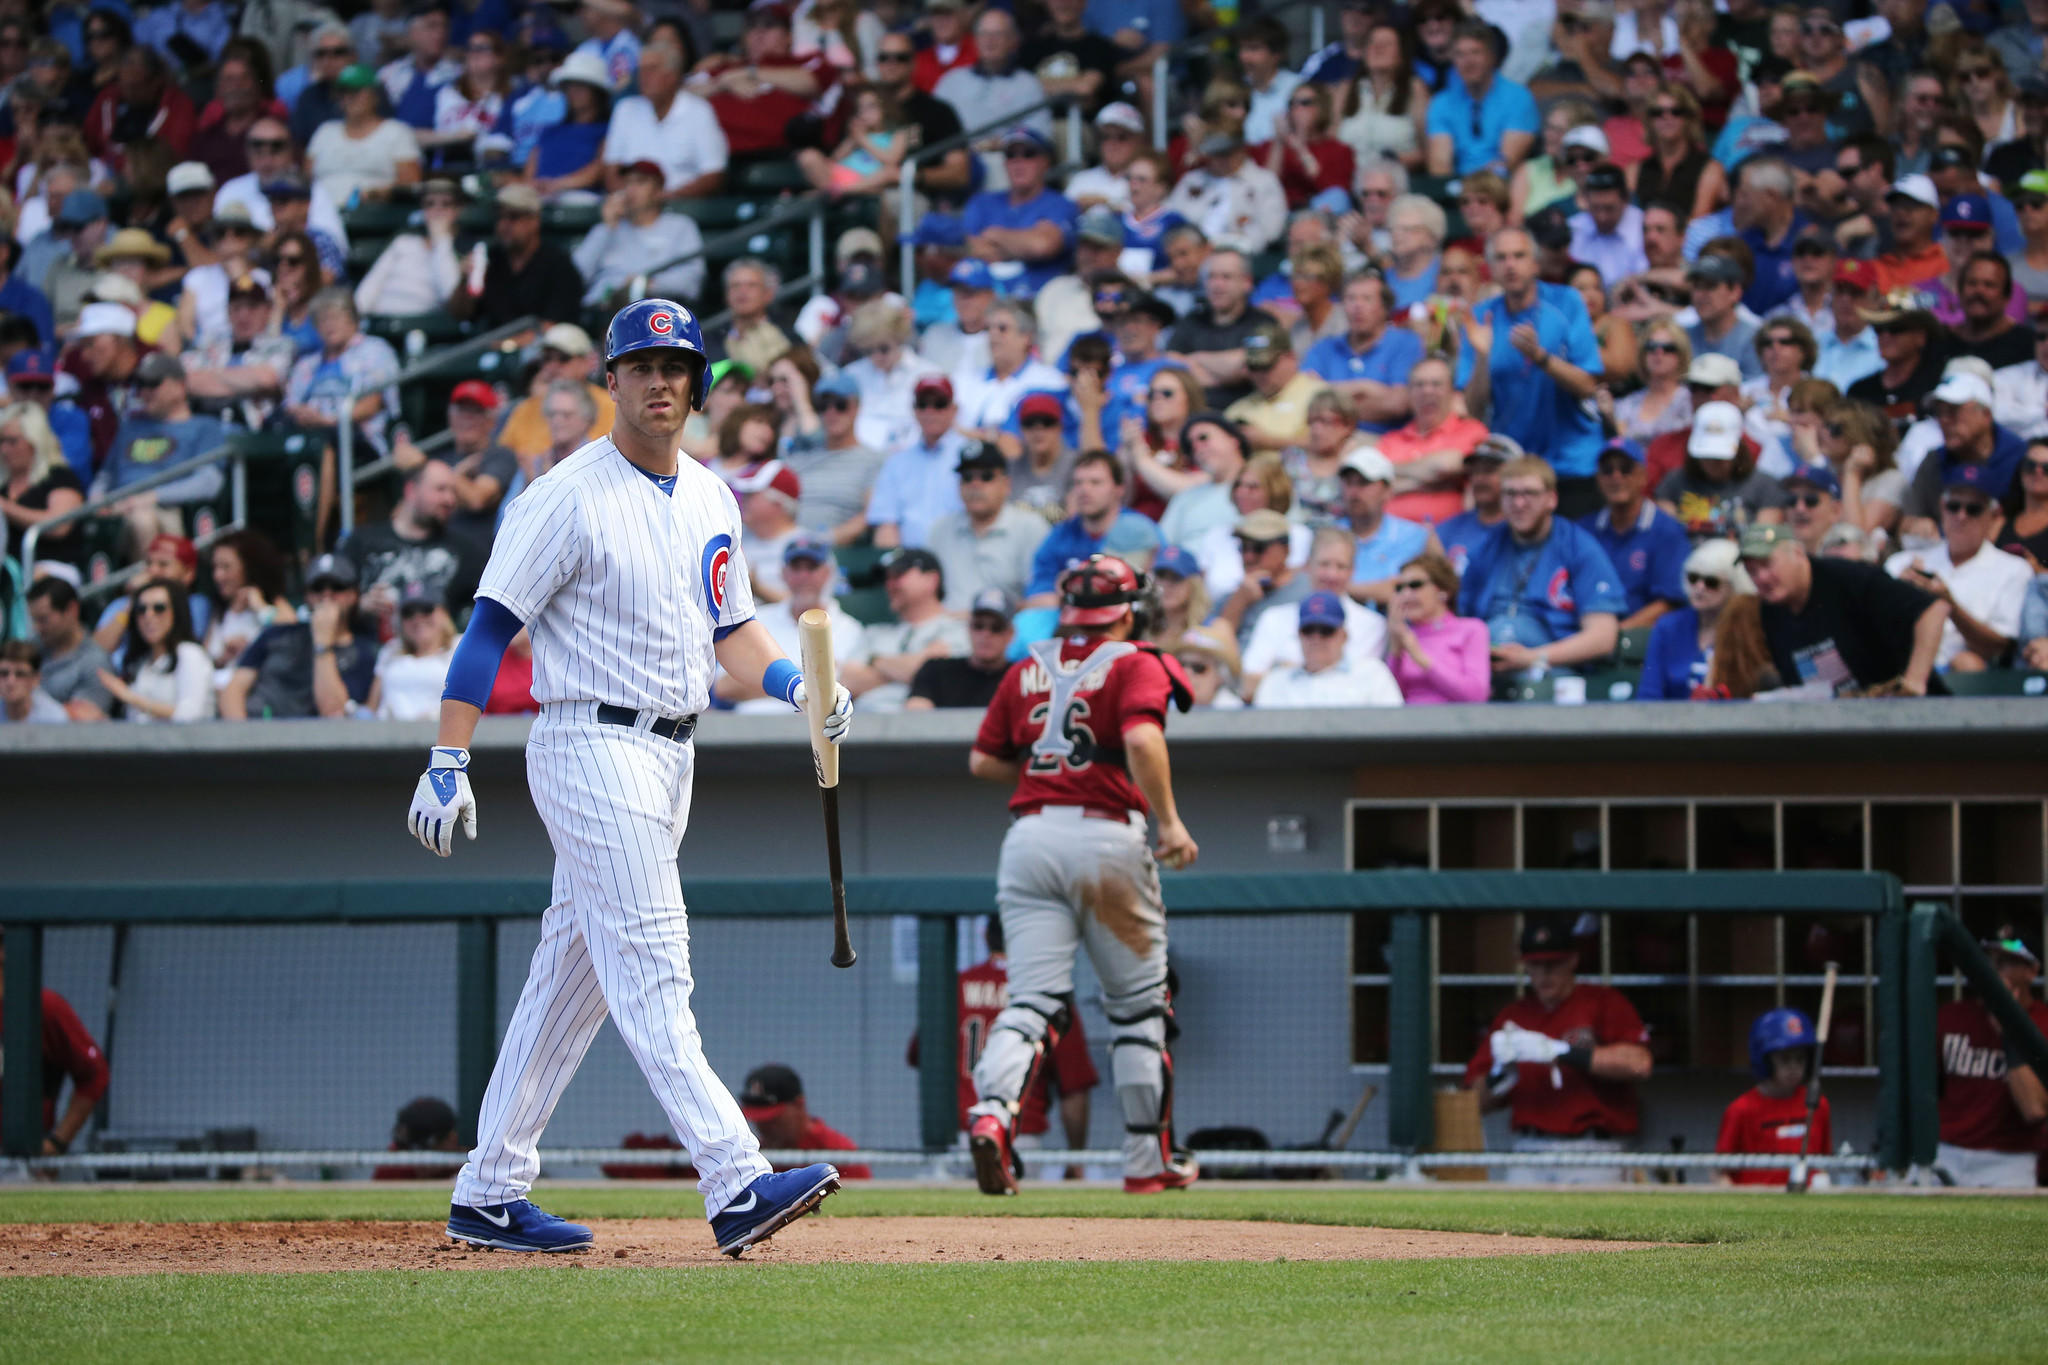 A disappointed Mike Olt returns to the dugout after striking out Thursday.